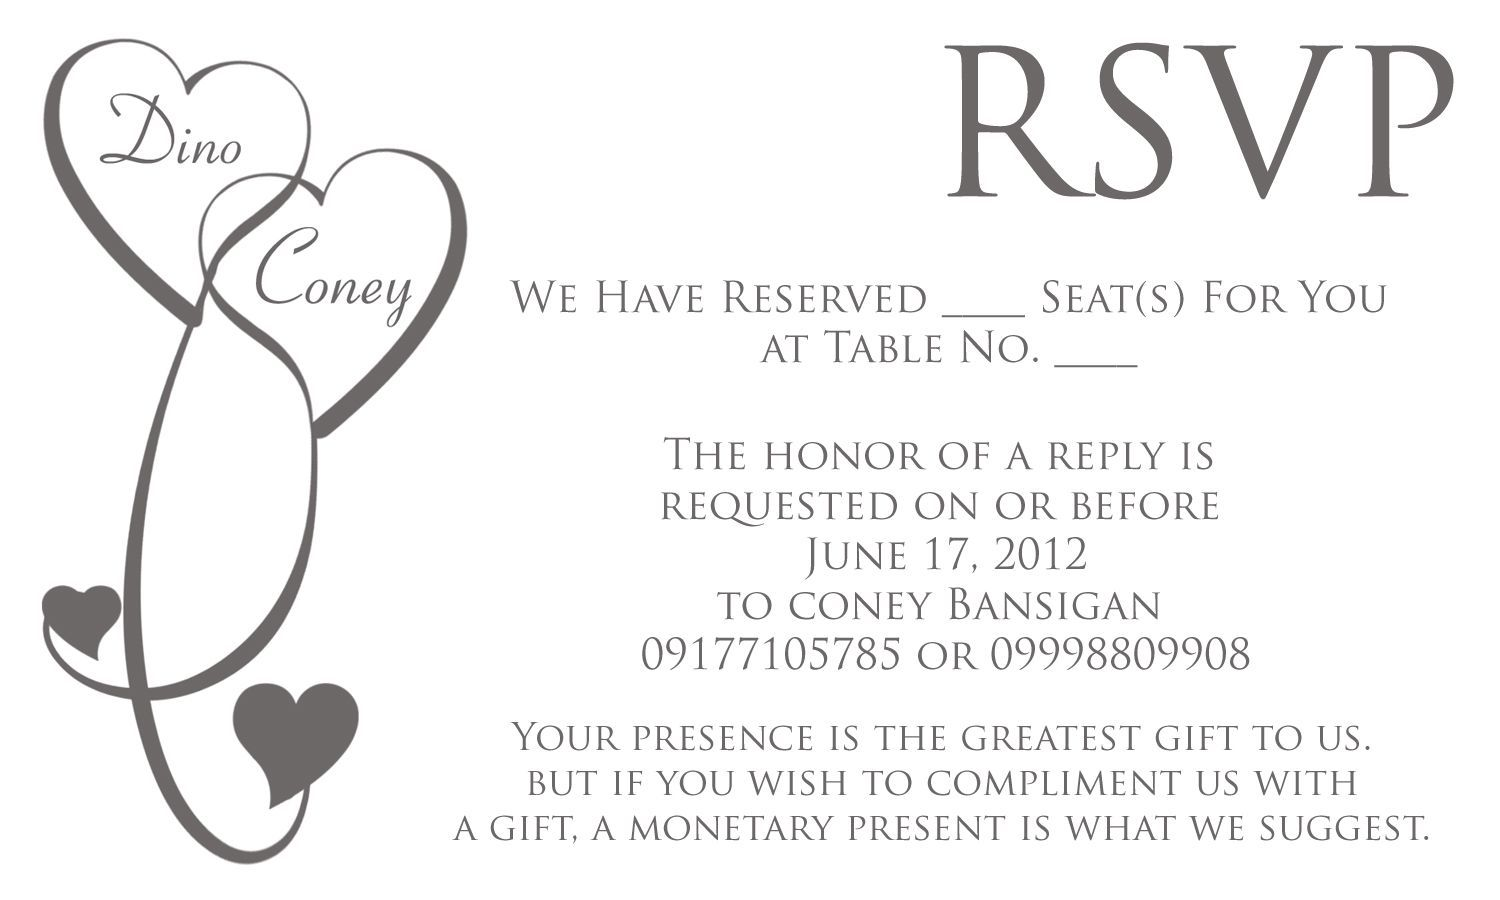 Rsvp To Wedding Invitation Wording: Wedding Invitation Reply Card Wording Samples